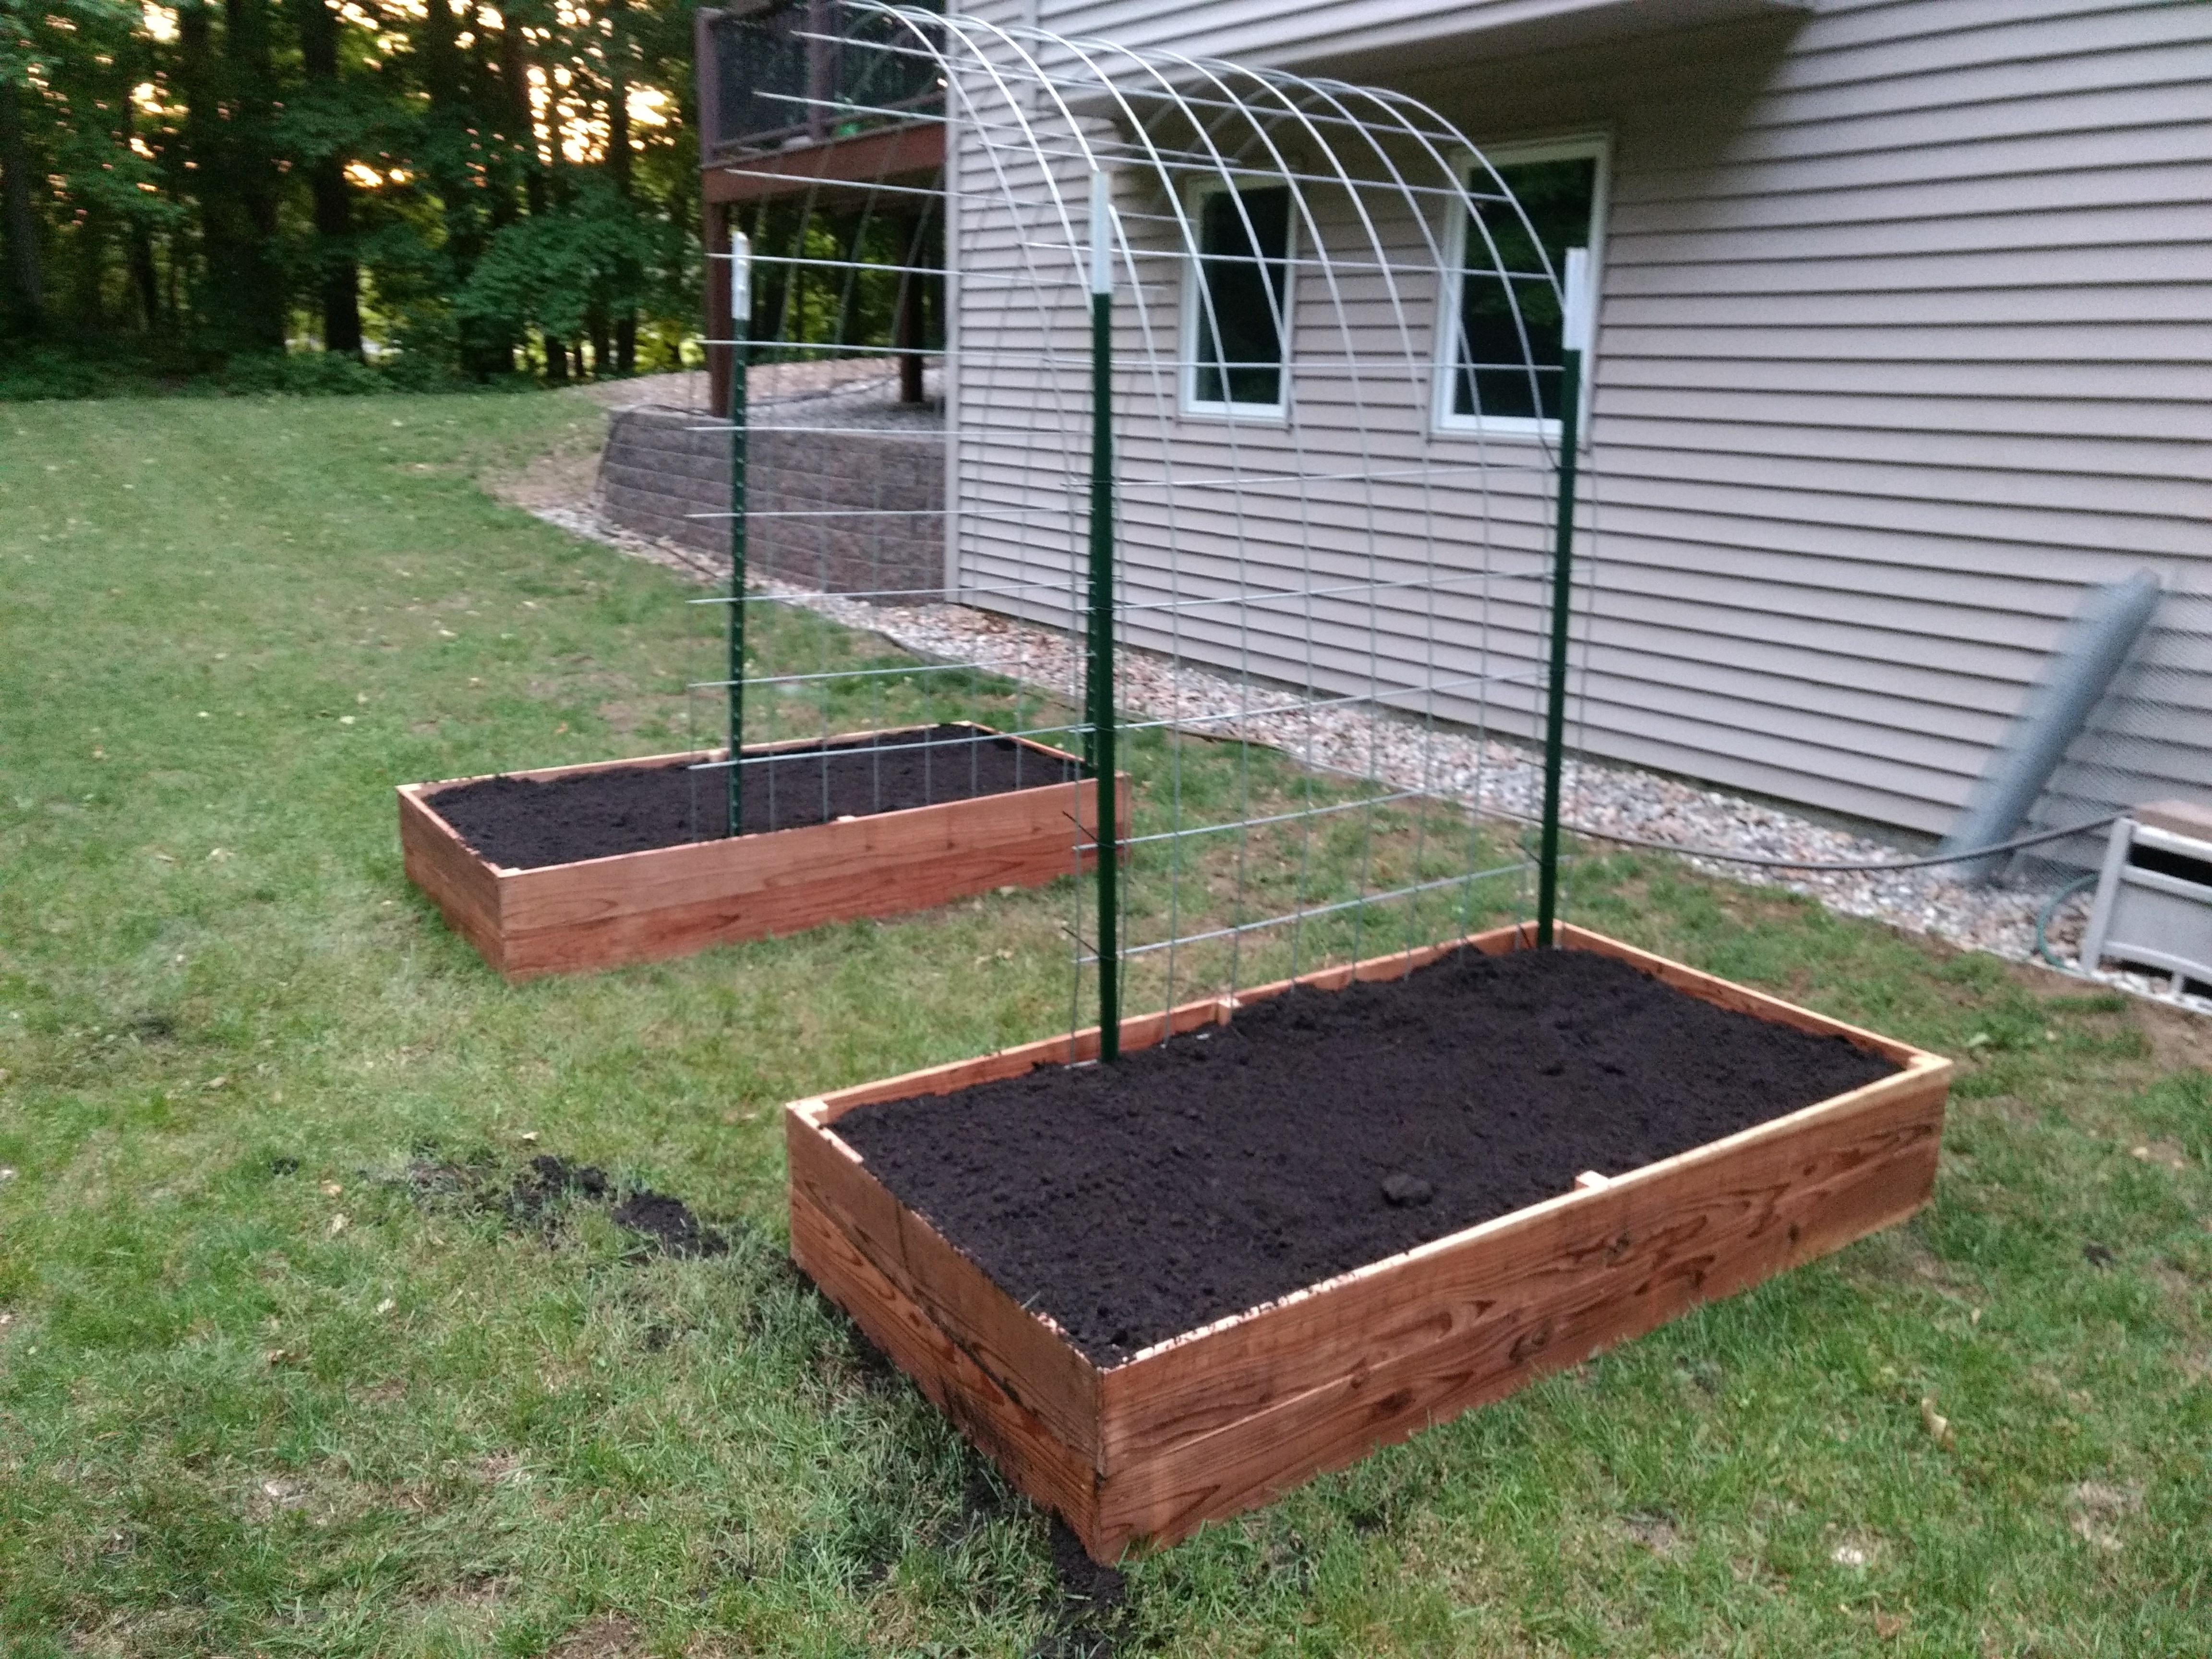 How To Build 2 Raised Garden Beds with an Arched Trellis for ... Raised Garden Beds Trellis Designs on pergolas trellis designs, home trellis designs, garden plants trellis designs, grapes trellis designs, raised garden beds landscaping, raised garden beds landscape design,